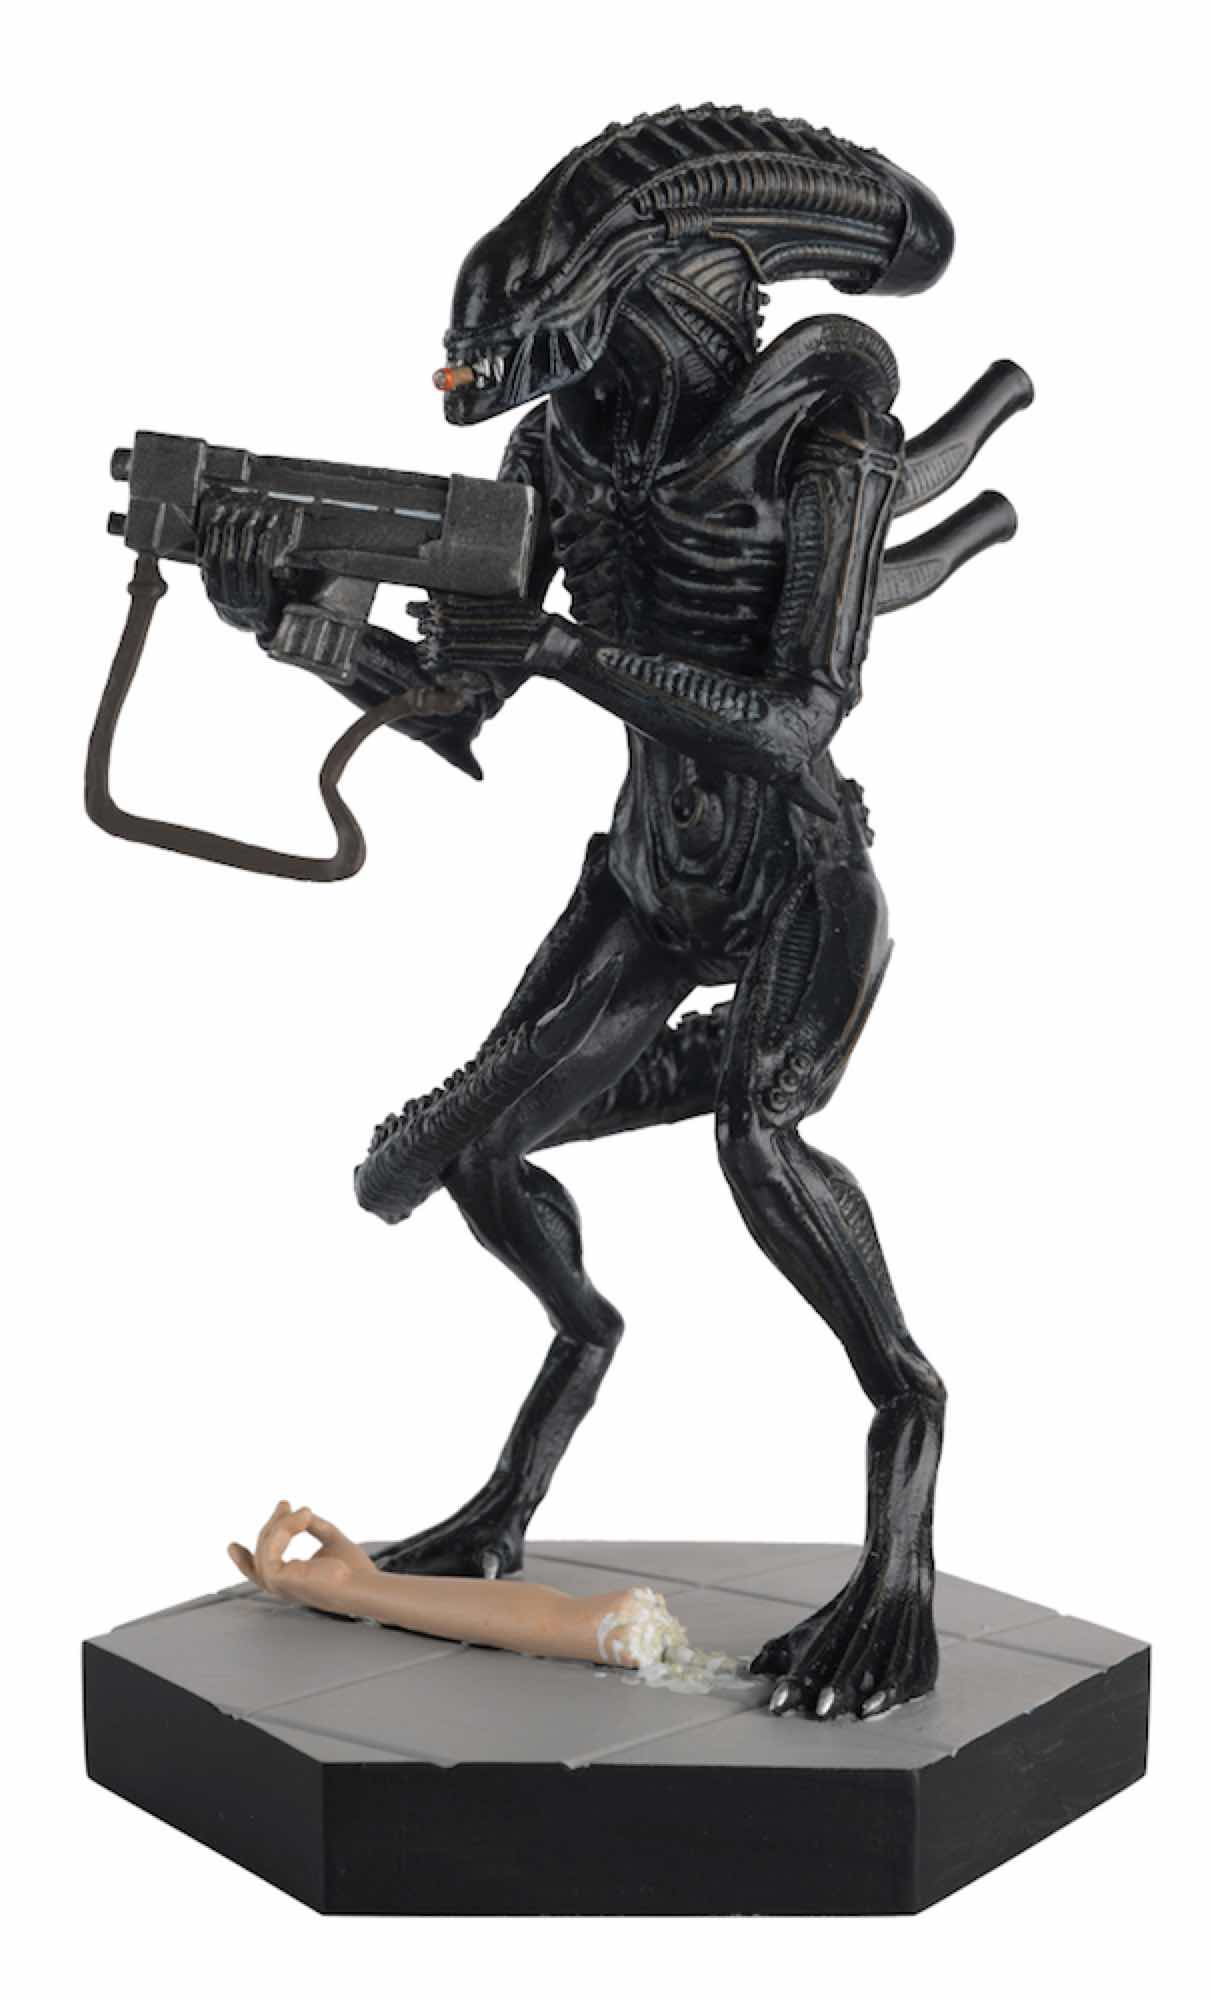 JERI THE SYNTHETIC FIG 12 CM ALIEN & PREDATOR FIGURINE COLLECTION #45 ALIENS STRONGHOLD